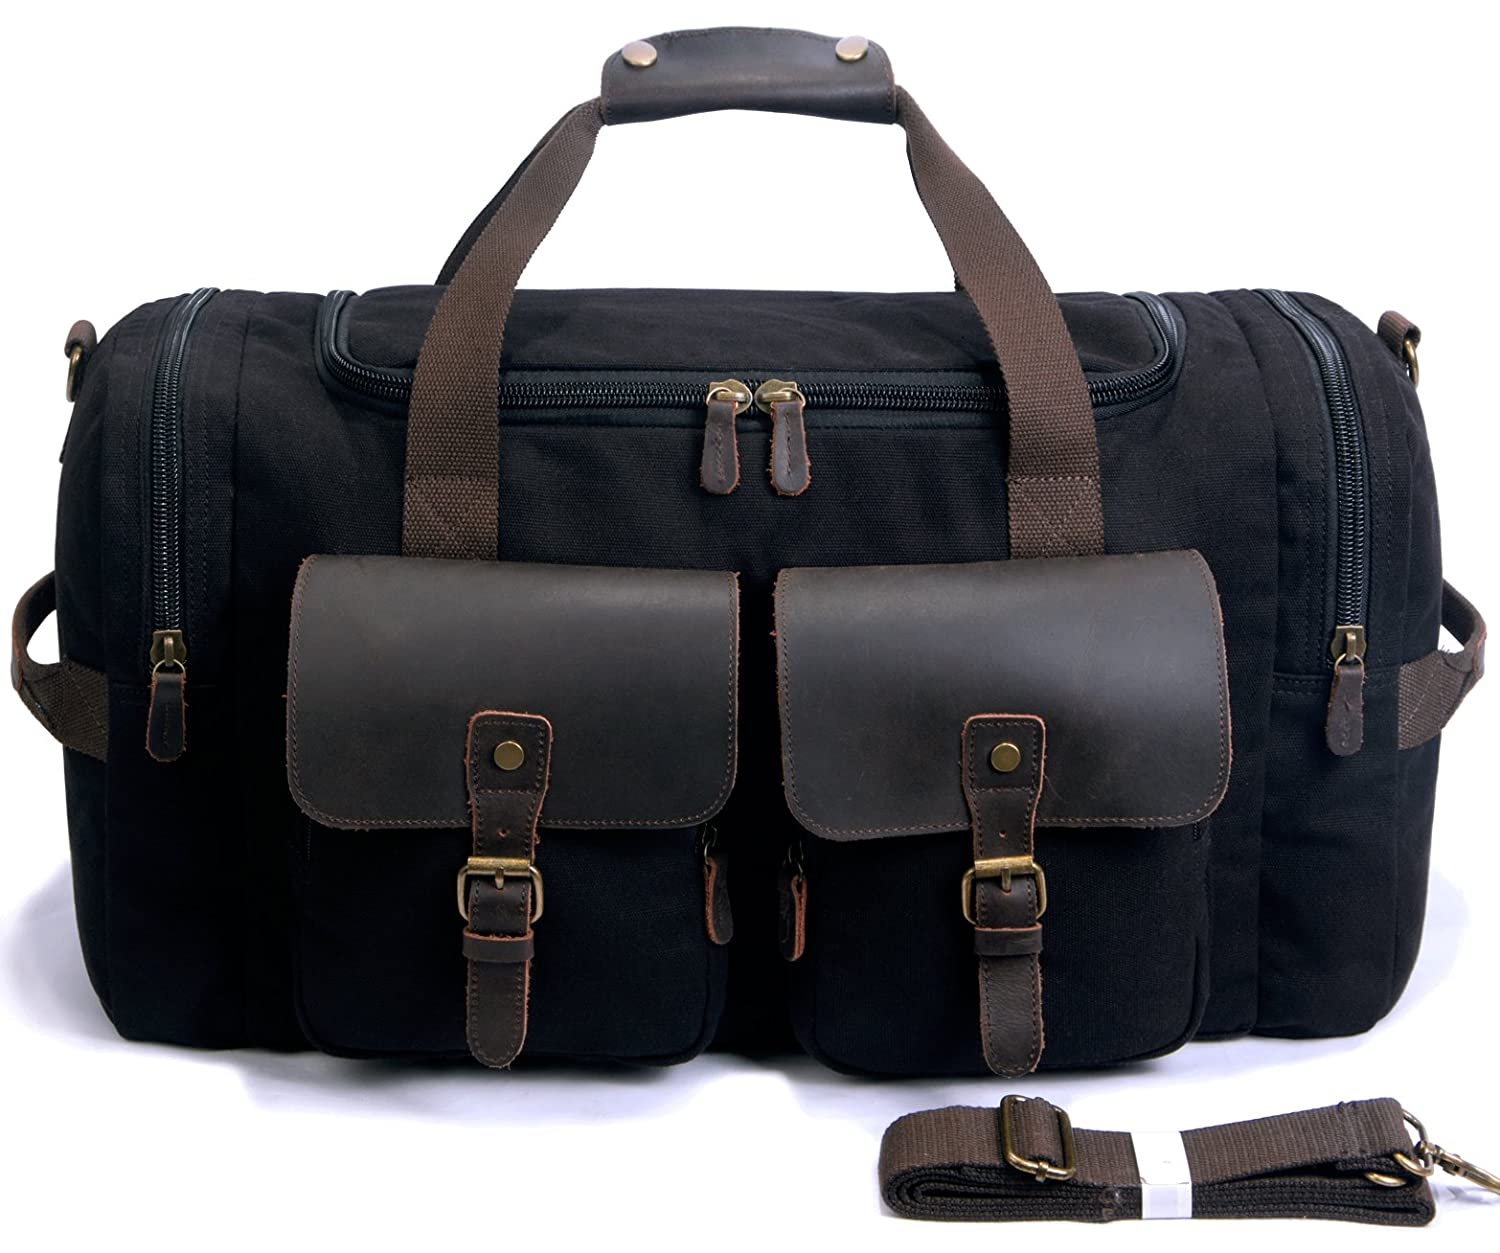 12b4d1803 Amazon.com | SUVOM Canvas Duffle Bag Leather Weekend Bag Carry On Travel Bag  Luggage Oversized Holdalls for Men and Women(Black) | Travel Duffels